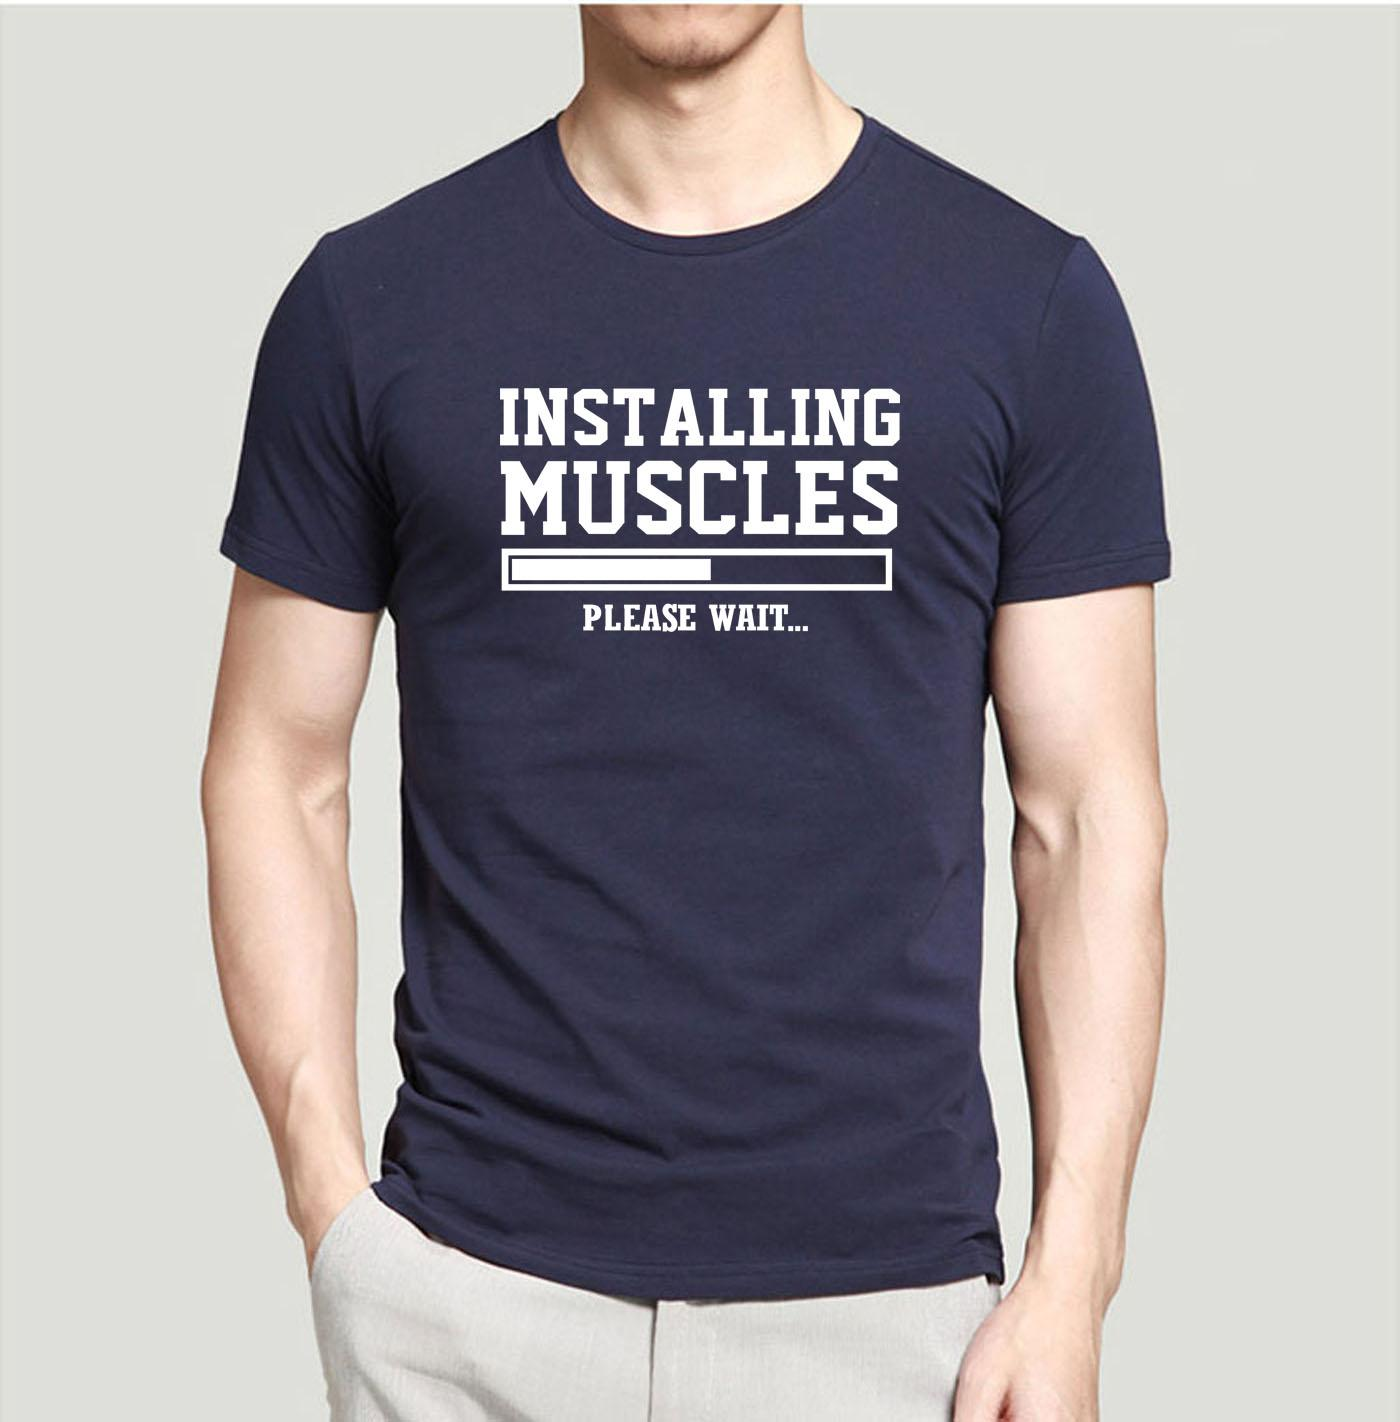 487b943b9 Funny Men T Shirt Installing Muscles Letters 2018 Summer Casual Crossfit  Fitness 100% Cotton High Quality Top Tees Summer O Neck It Tee Shirts As T  Shirt ...